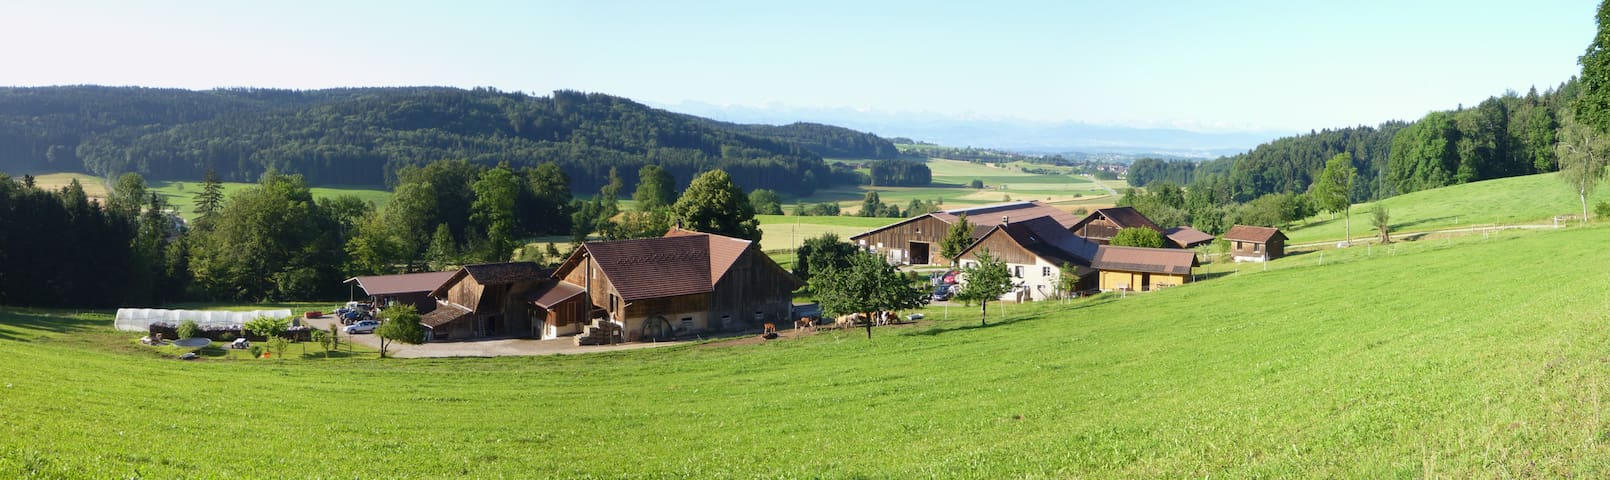 Swissfarm with a great view to the Swissmountains - Russikon - อื่น ๆ